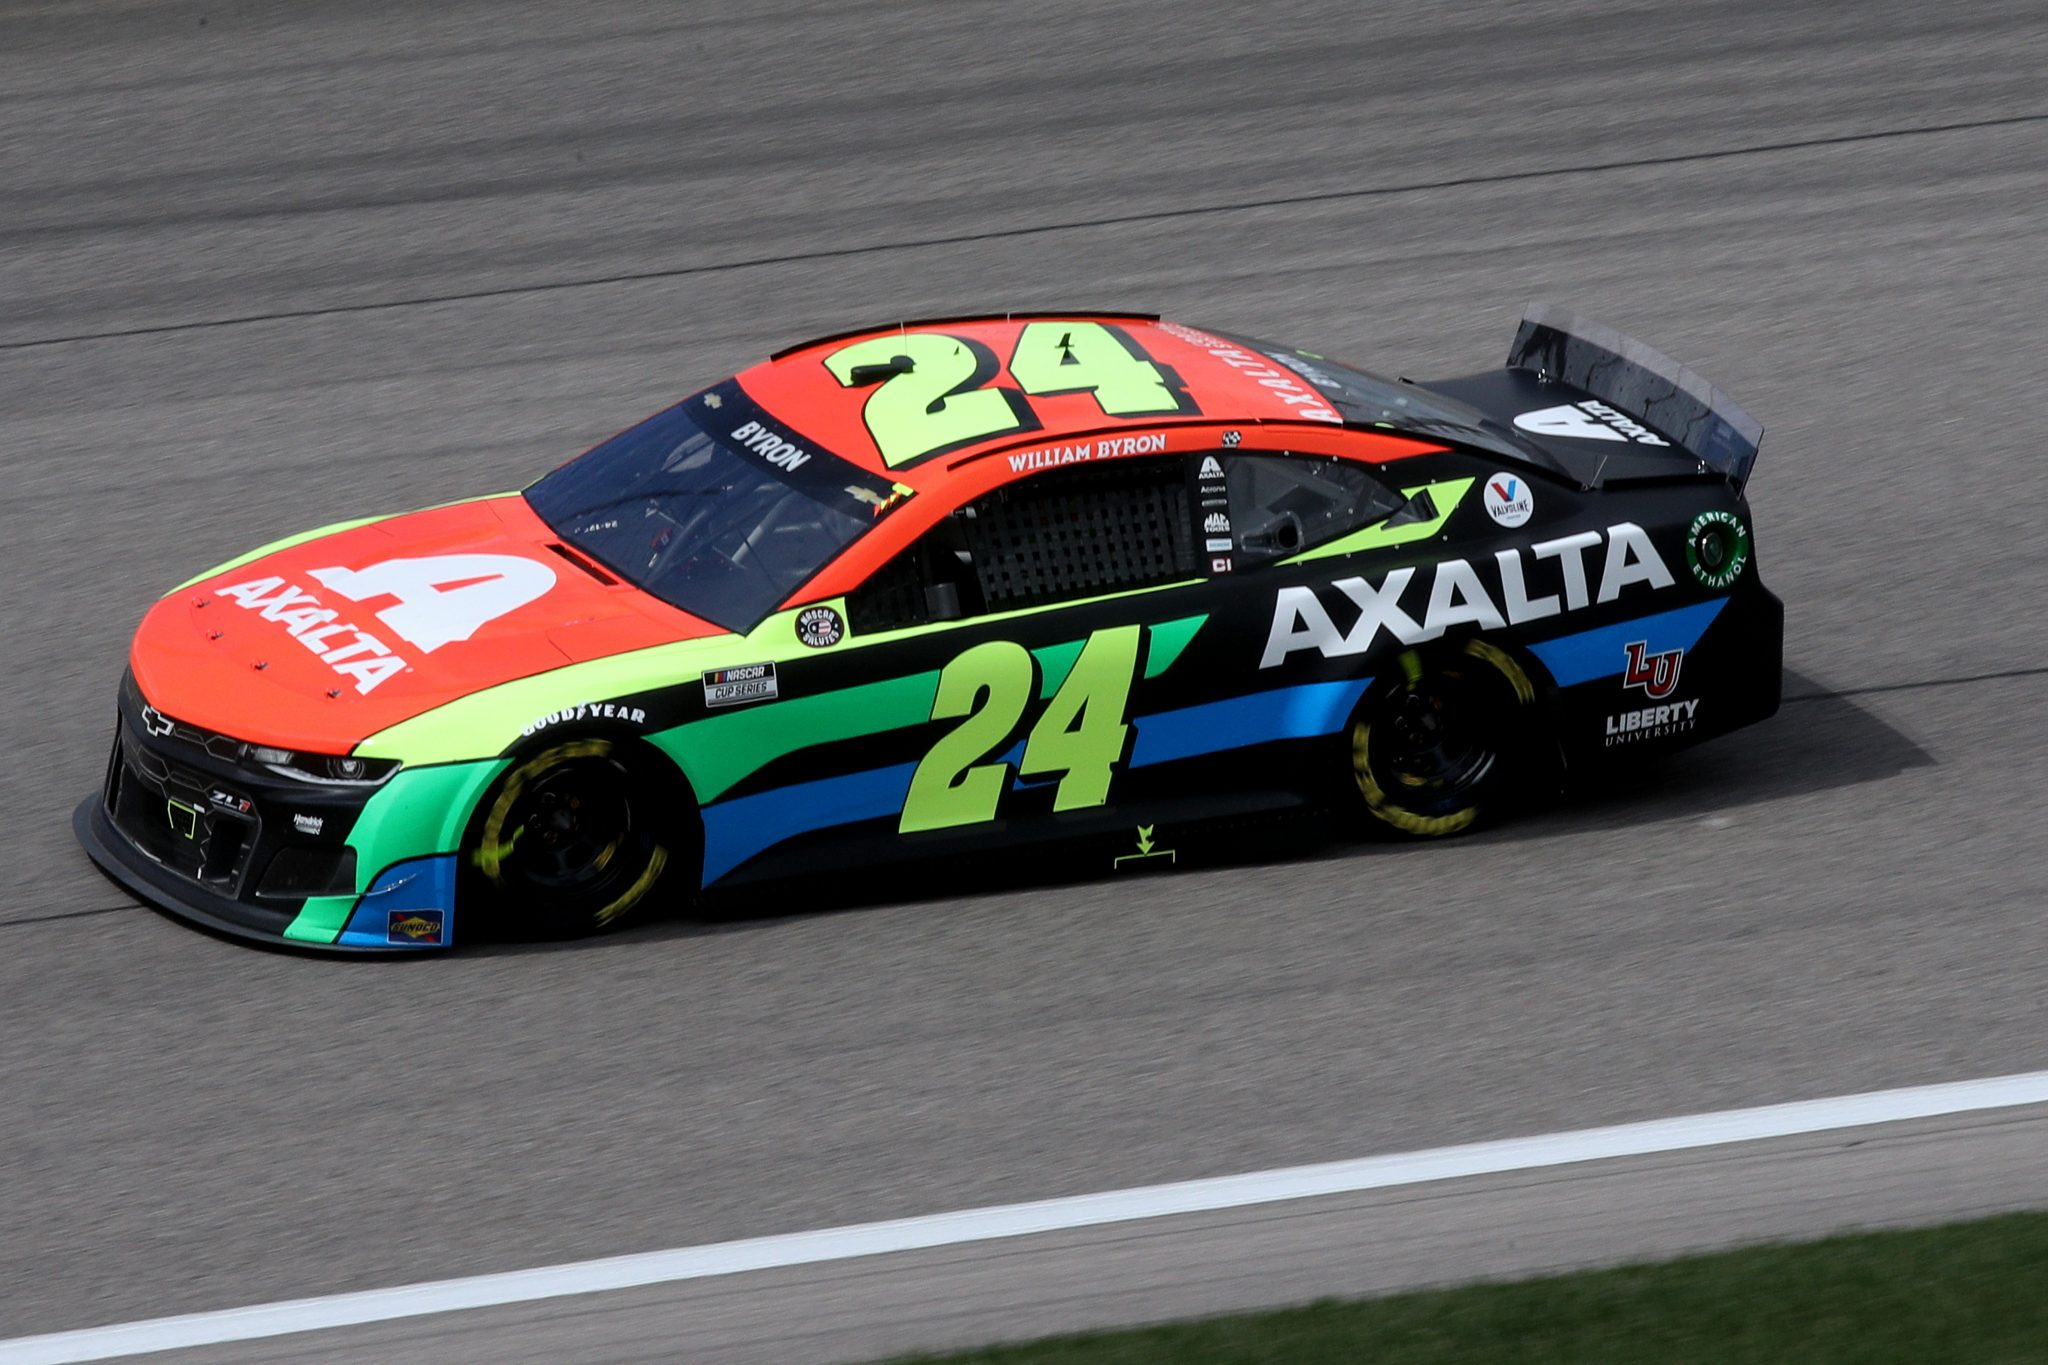 KANSAS CITY, KANSAS - MAY 02: William Byron, driver of the #24 Axalta Chevrolet, drives during the NASCAR Cup Series Buschy McBusch Race 400 at Kansas Speedway on May 02, 2021 in Kansas City, Kansas. (Photo by Sean Gardner/Getty Images) | Getty Images